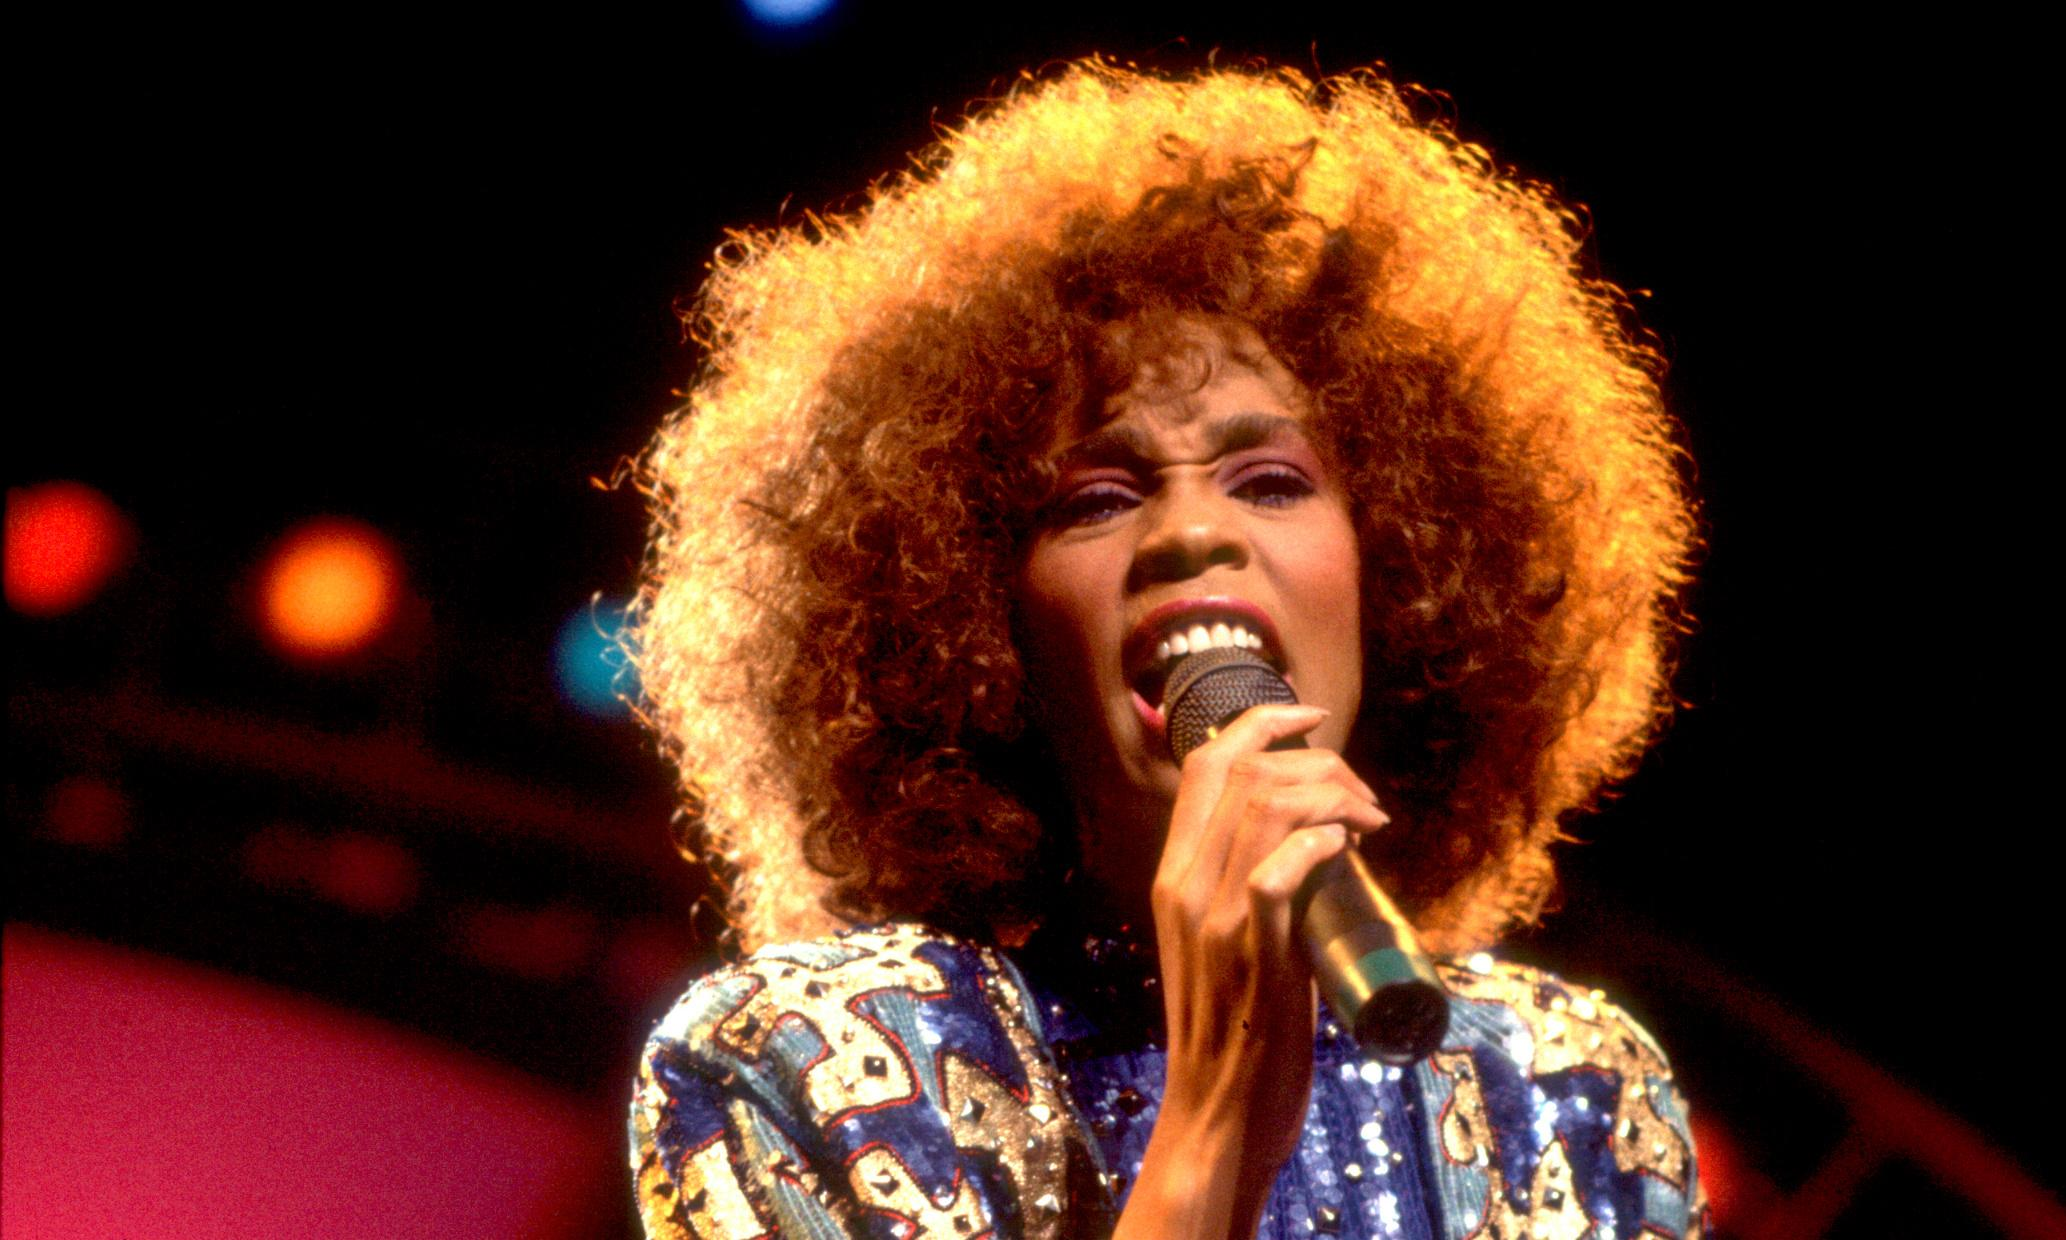 Whitney Houston hologram tour, album and Broadway show planned